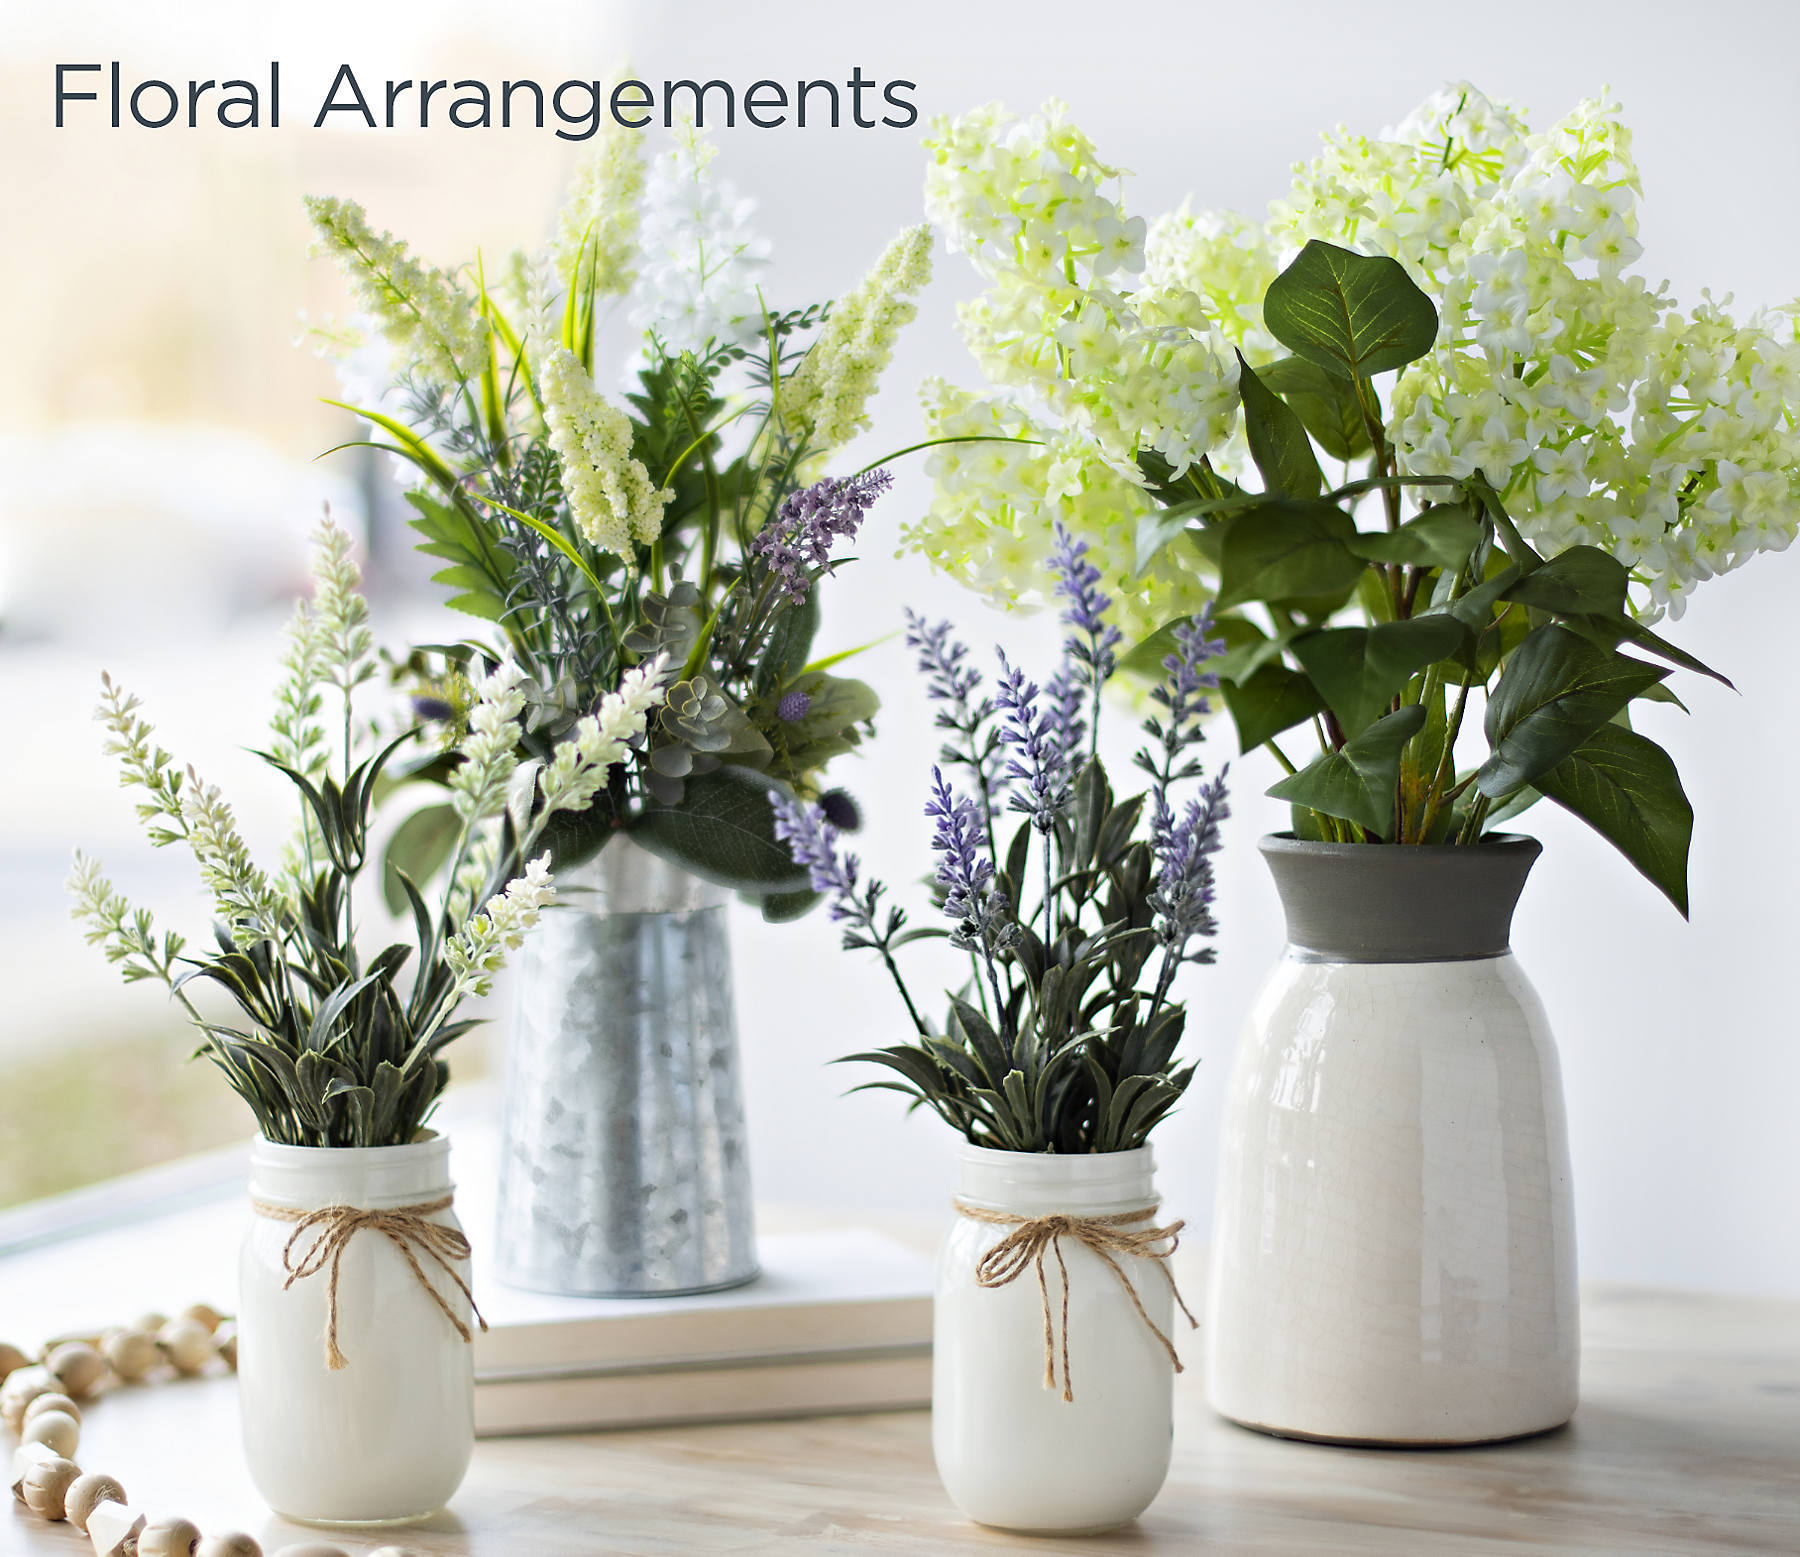 Floral Arrangements Up to 35% Off with code